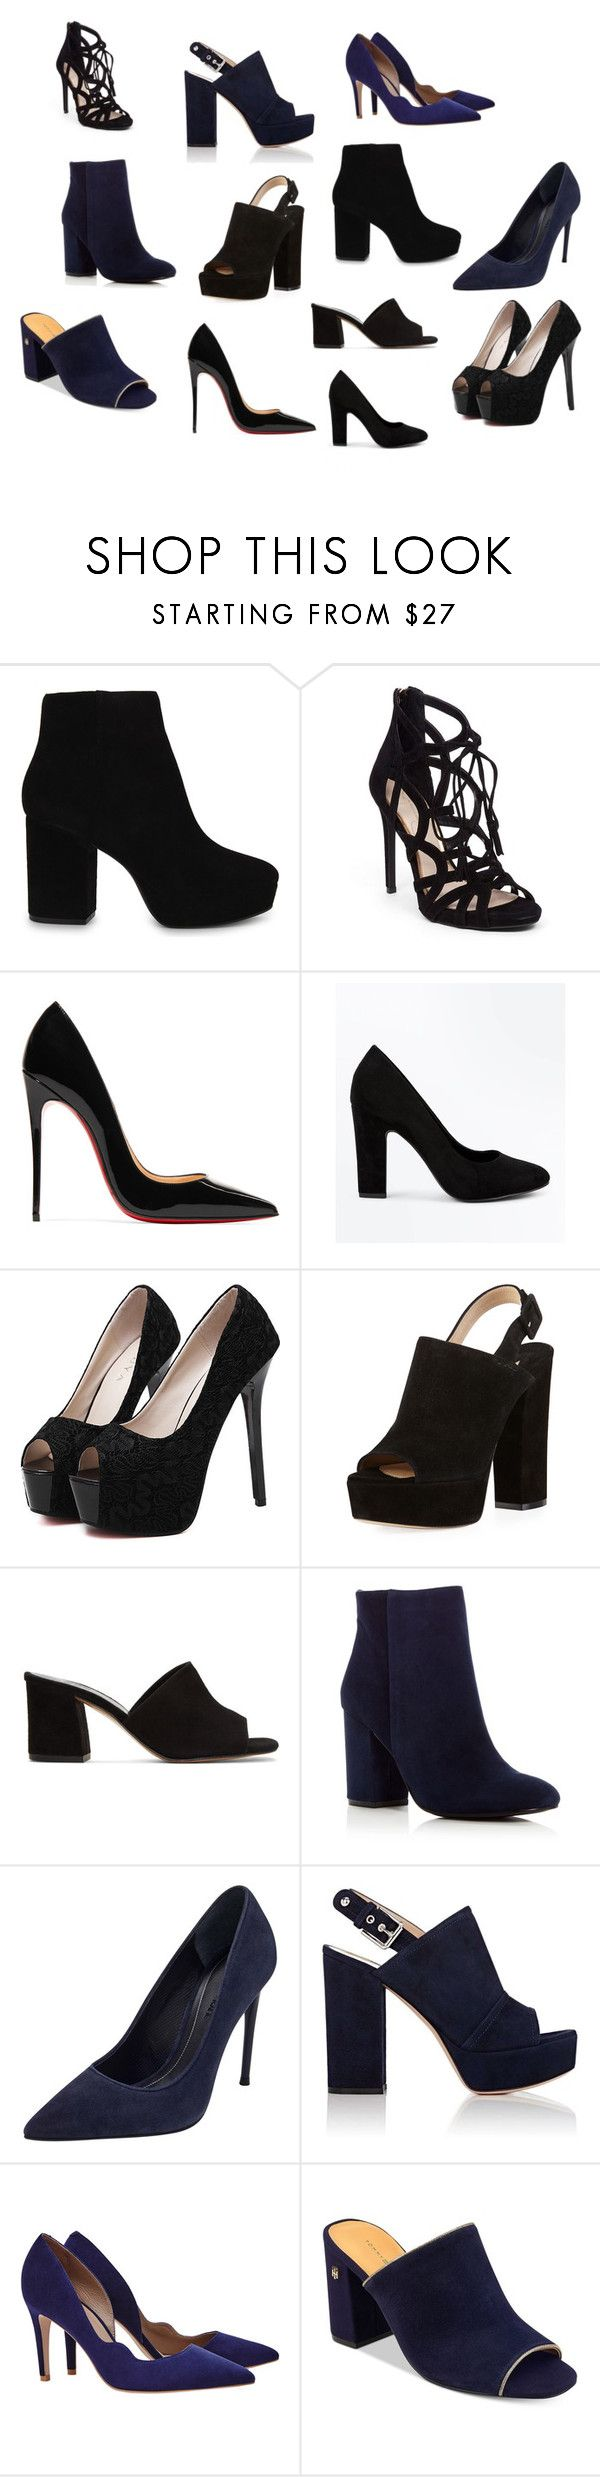 """""""zapatos pau"""" by modo-om on Polyvore featuring moda, ALDO, Jessica Simpson, Christian Louboutin, New Look, WithChic, Paul Andrew, Maryam Nassir Zadeh, Kenneth Cole y Kendall + Kylie"""